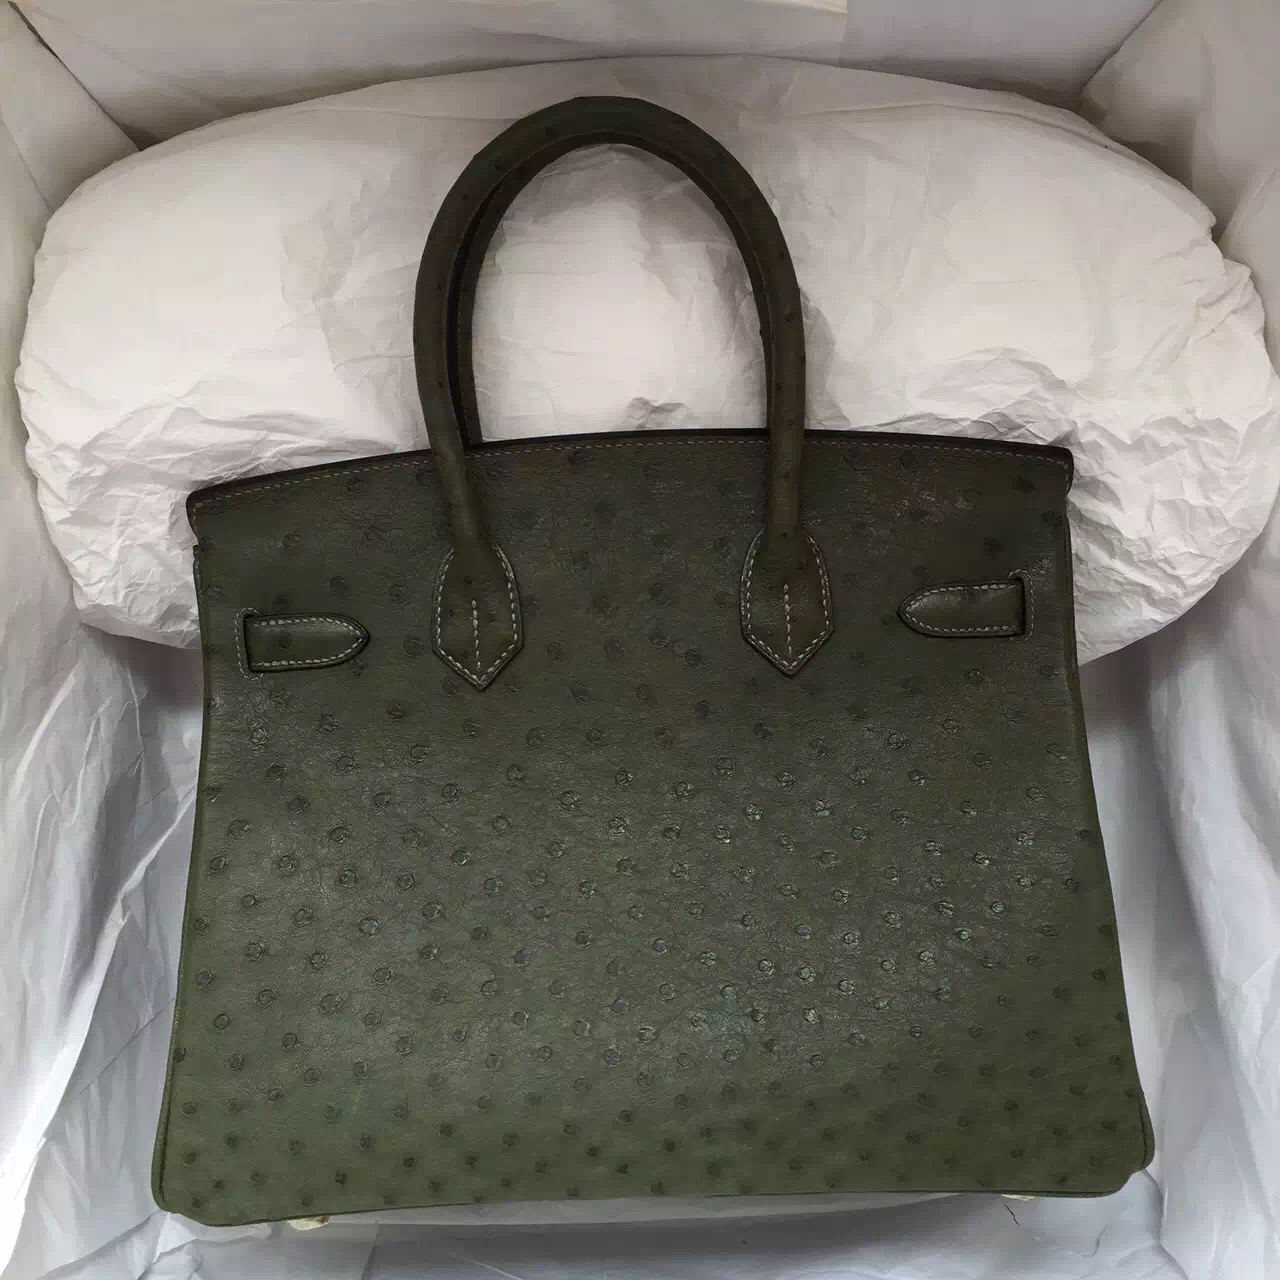 Hand Stitching Hermes Birkin 30CM in V6 Canopee Green Ostrich Leather Tote Bag